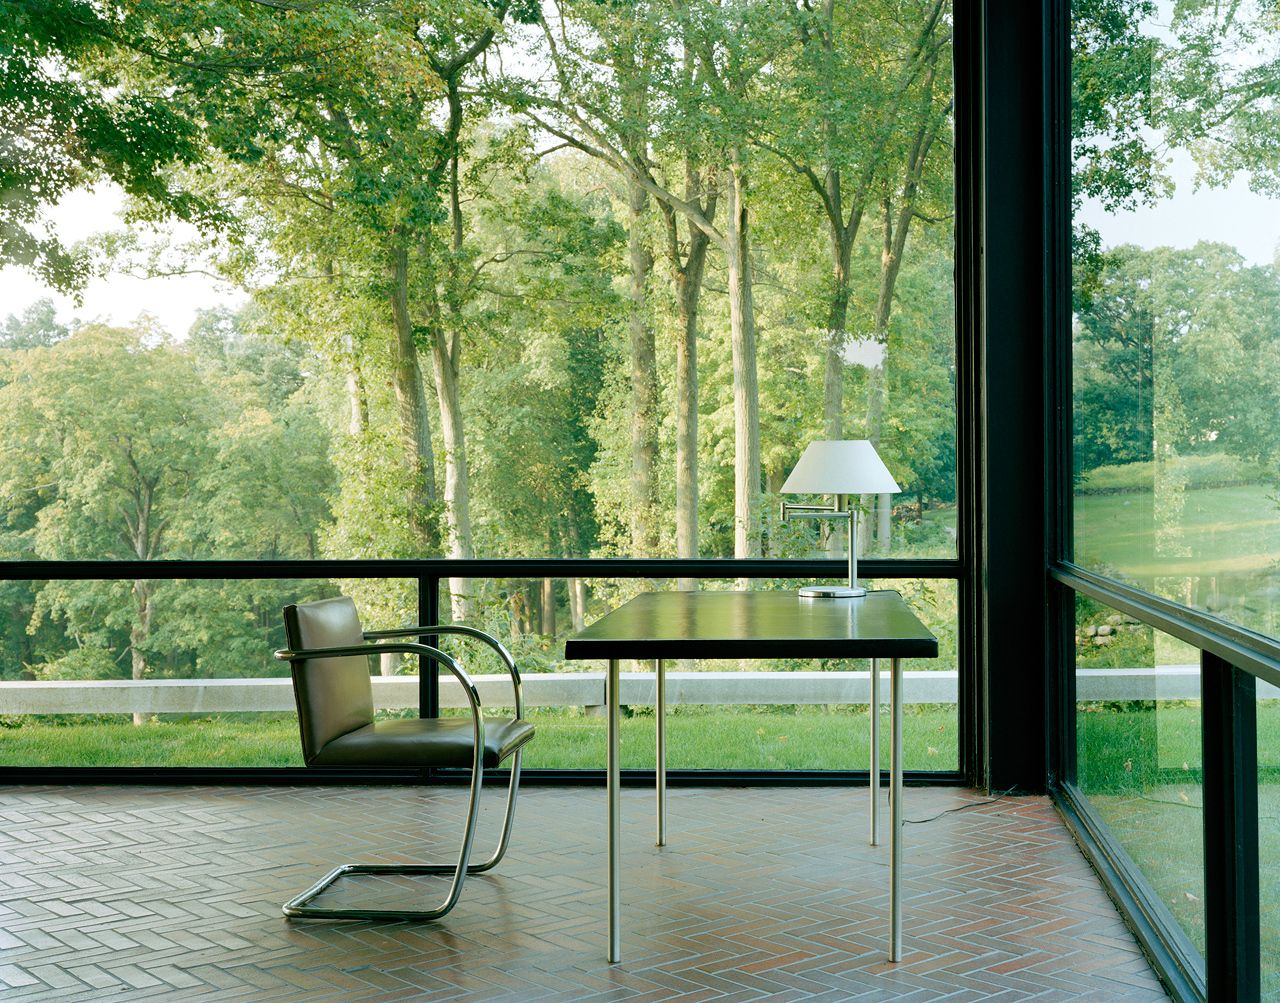 1000+ images about Structures - Glass House, Philip Johnson on ... - ^